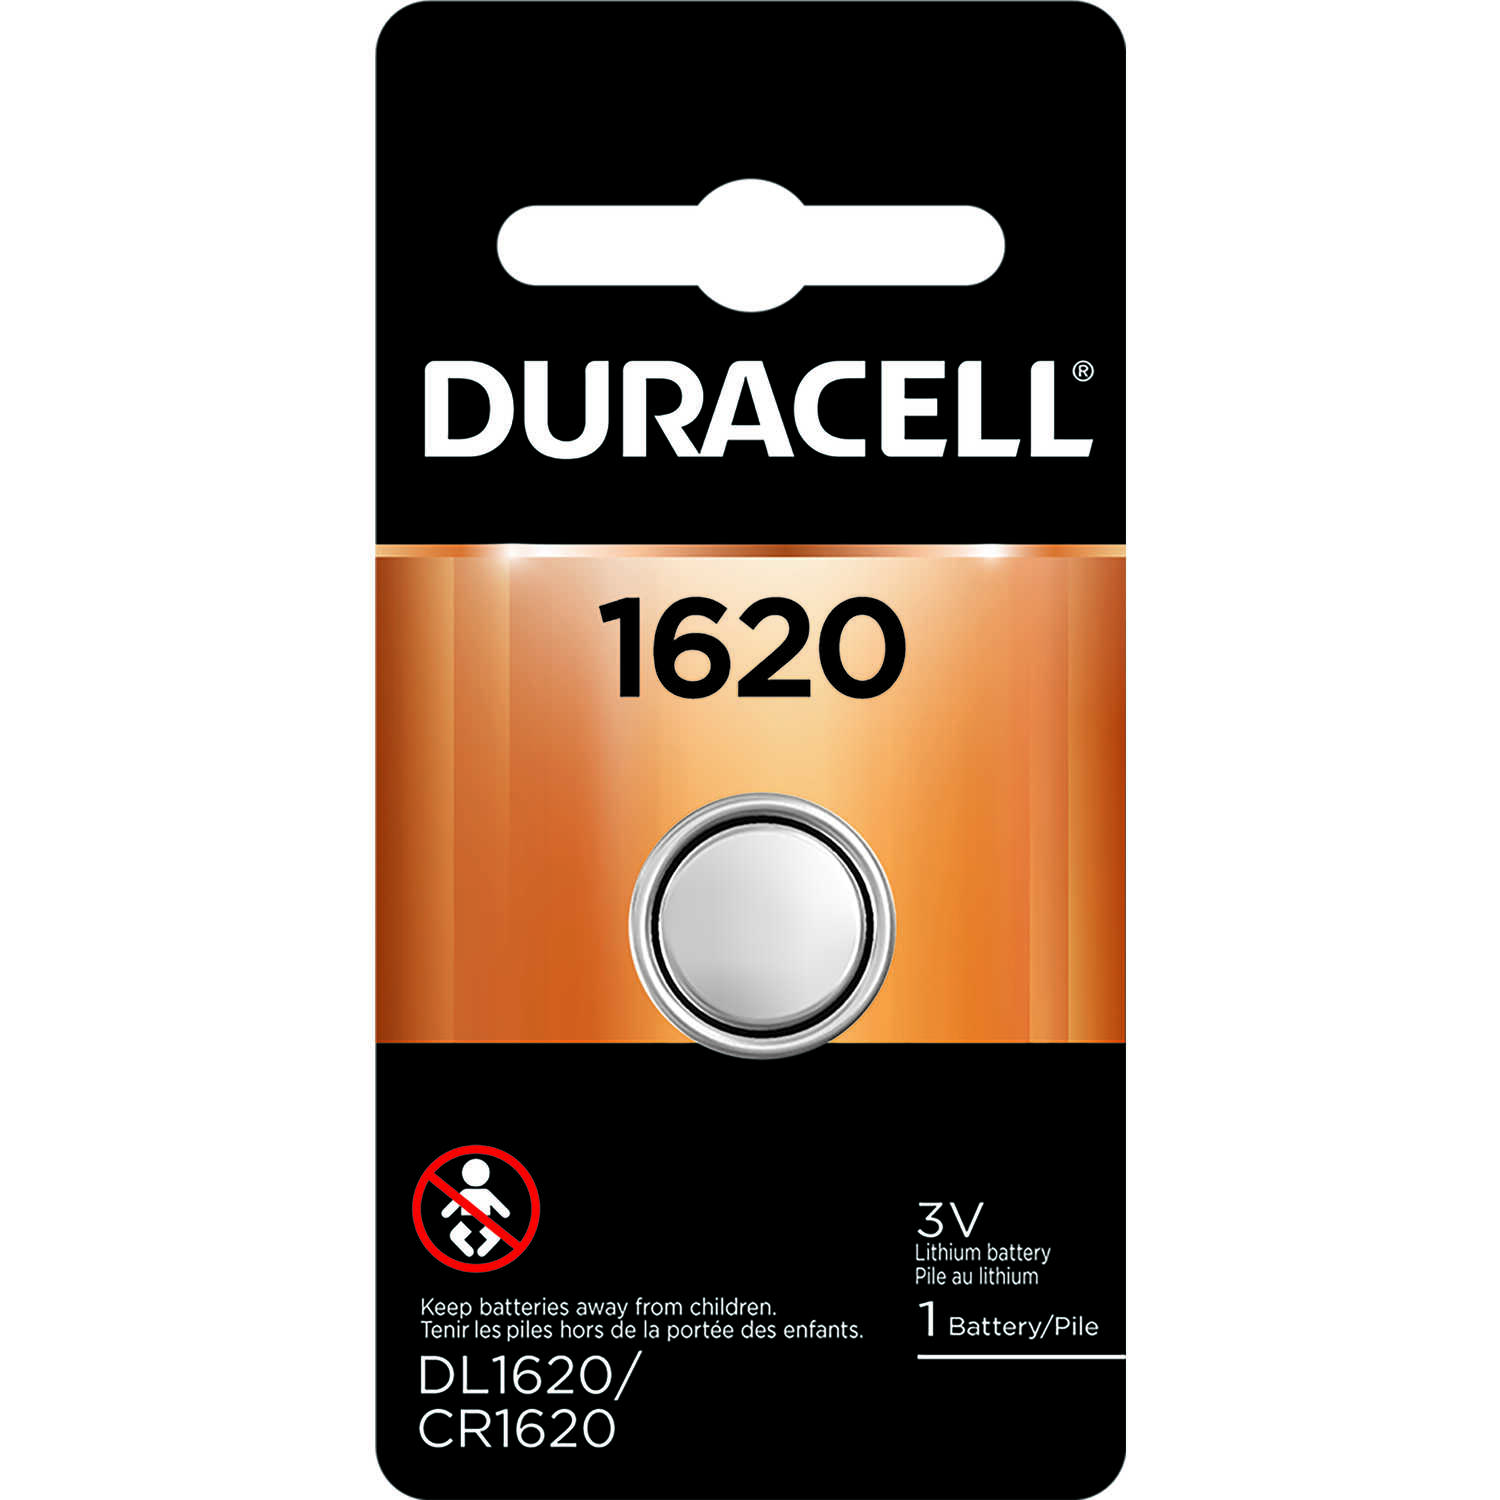 Duracell  Lithium  3 volt Medical Battery  1 pk 1620